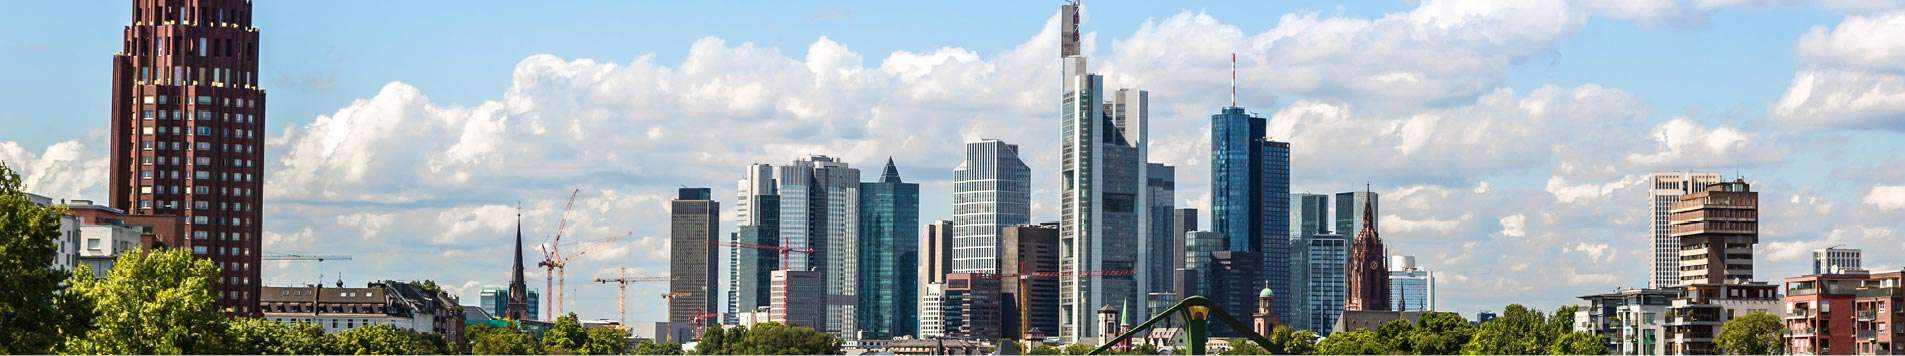 Bond Factsheet Frankfurt am Main